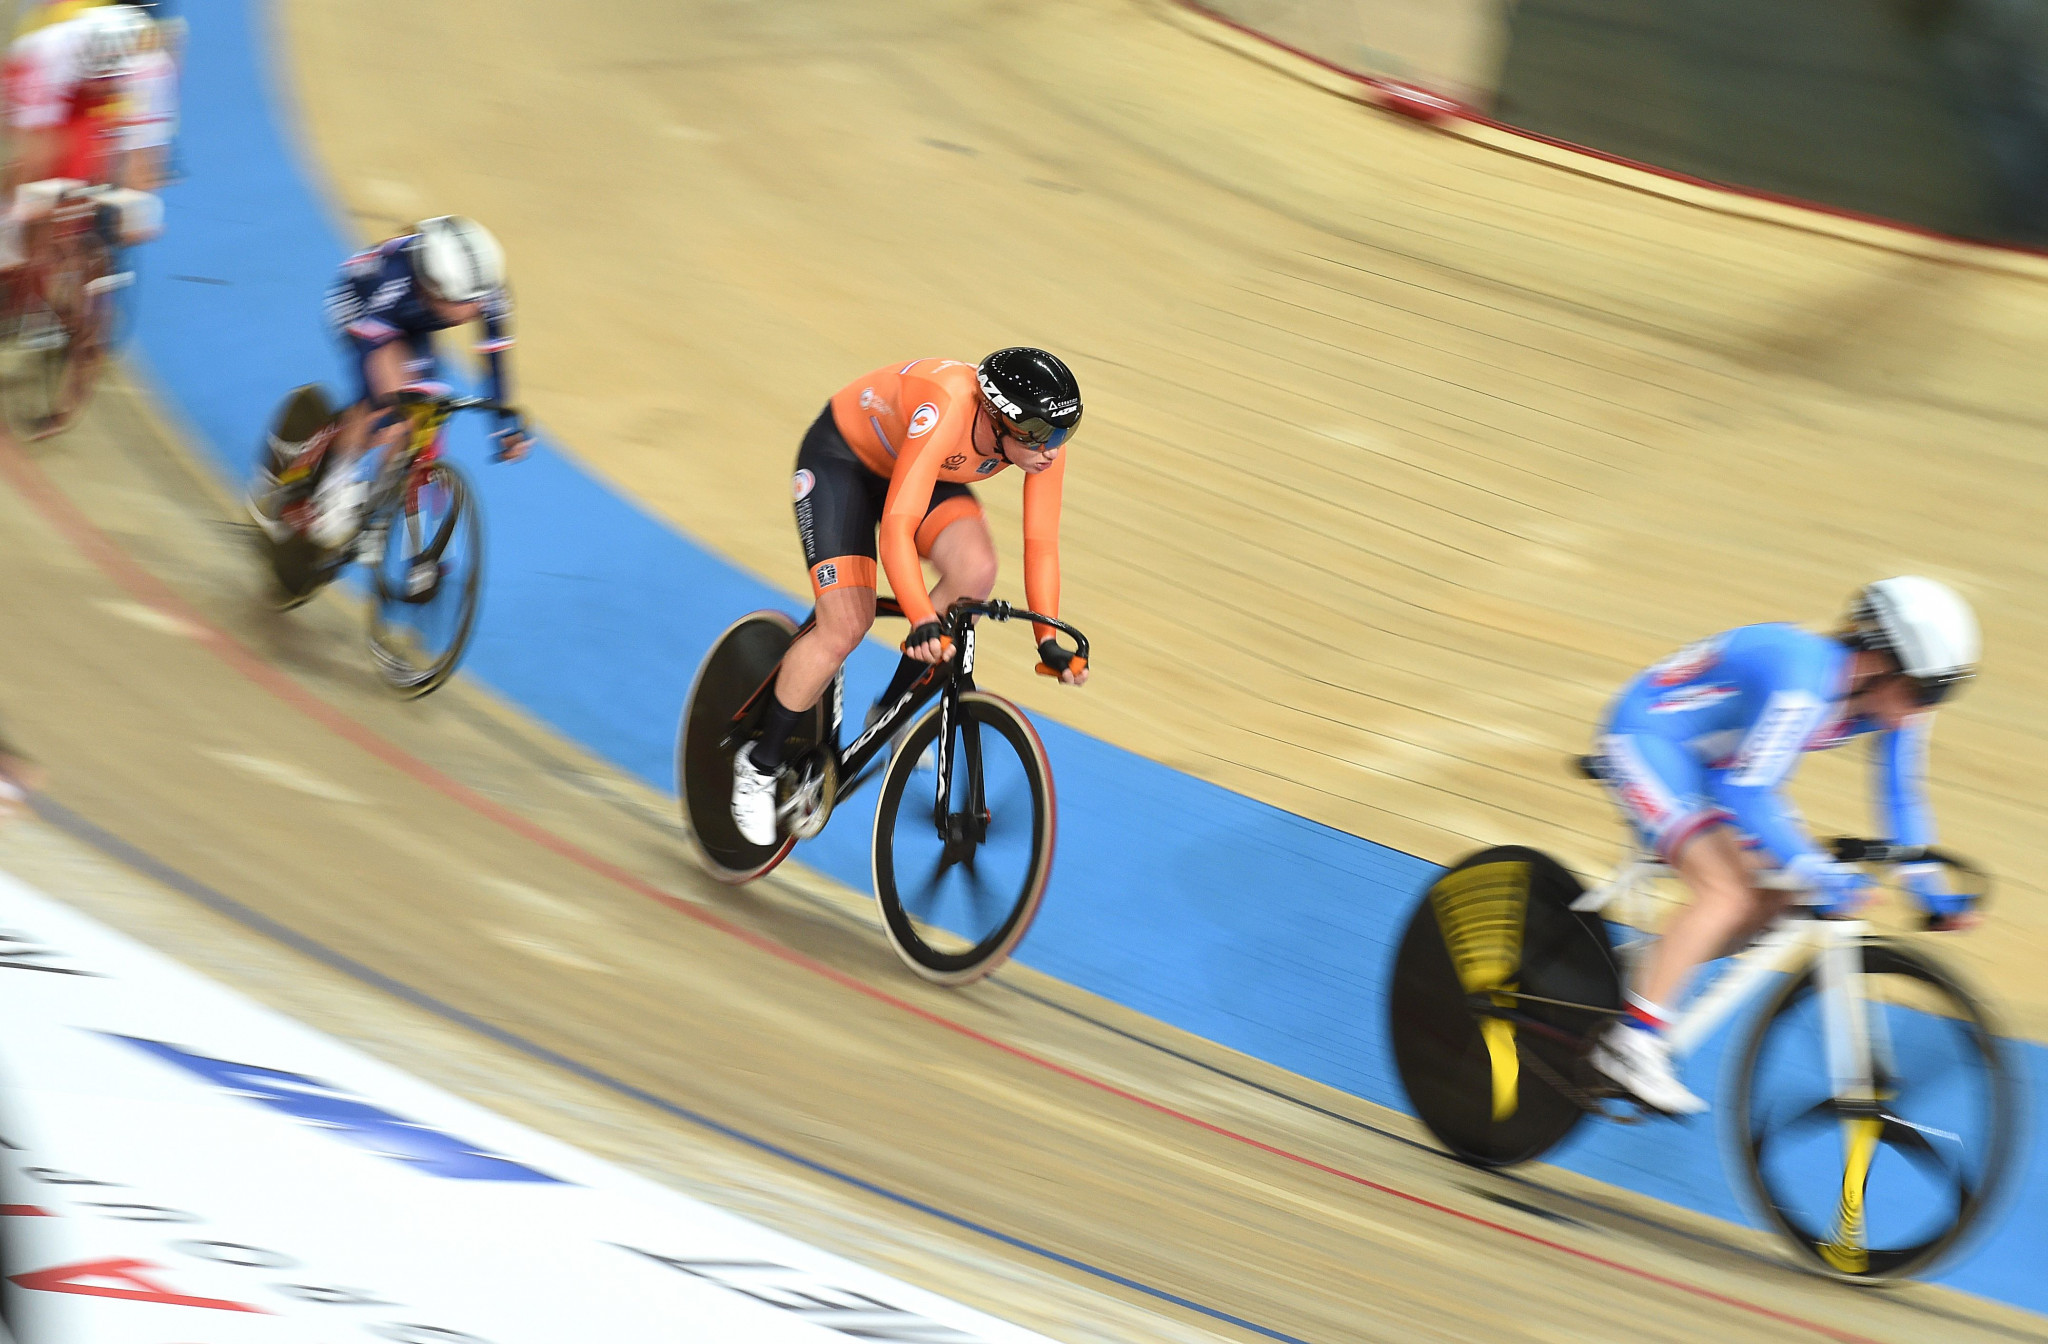 Dutch legend Wild wins women's elimination race at European Track Cycling Championships